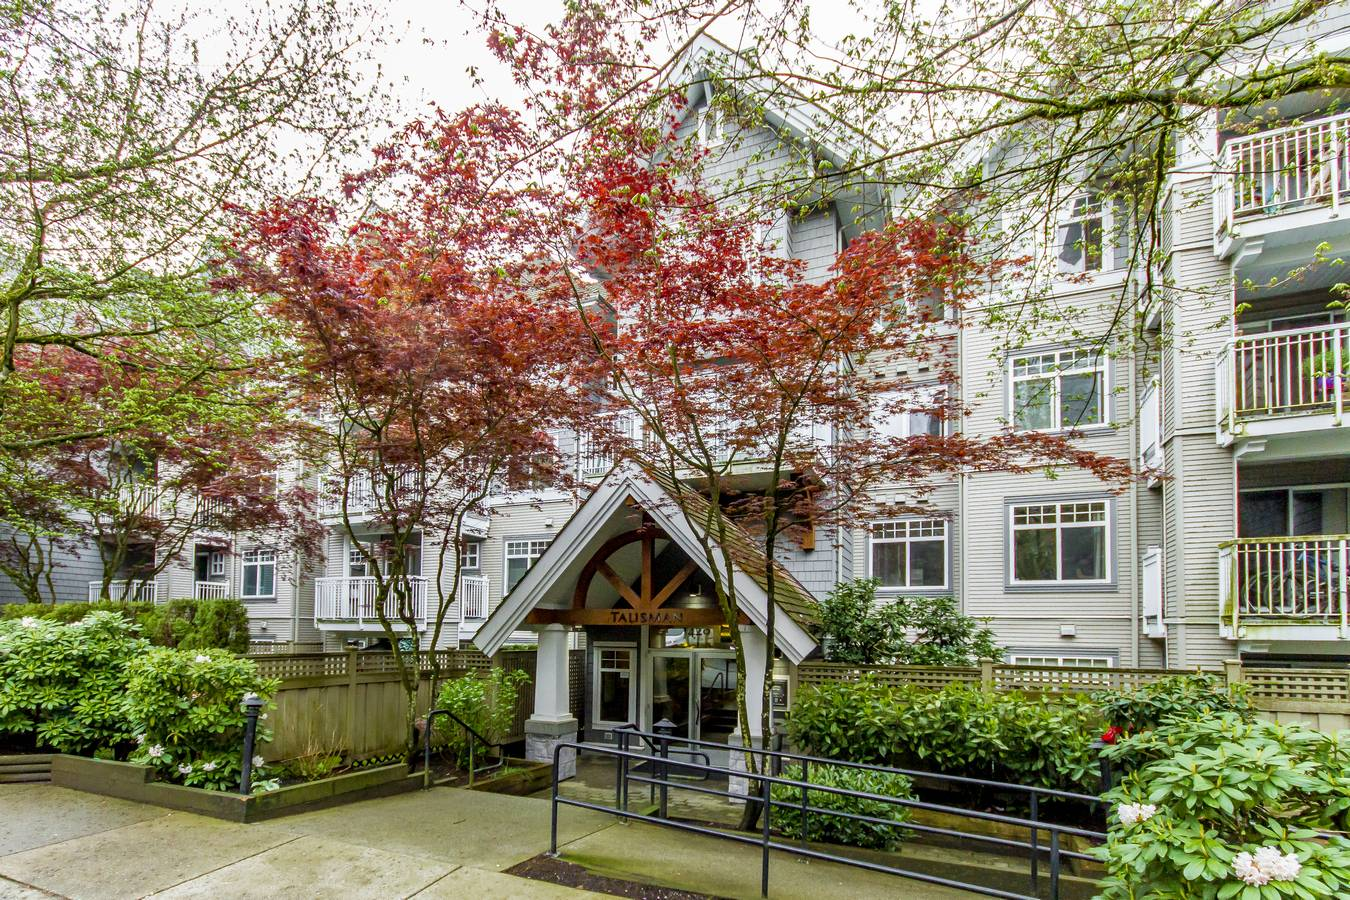 Main Photo: 213 1420 Parkway Boulevard in Coquitlam: Westwood Plateau Condo for sale : MLS®# R2262753